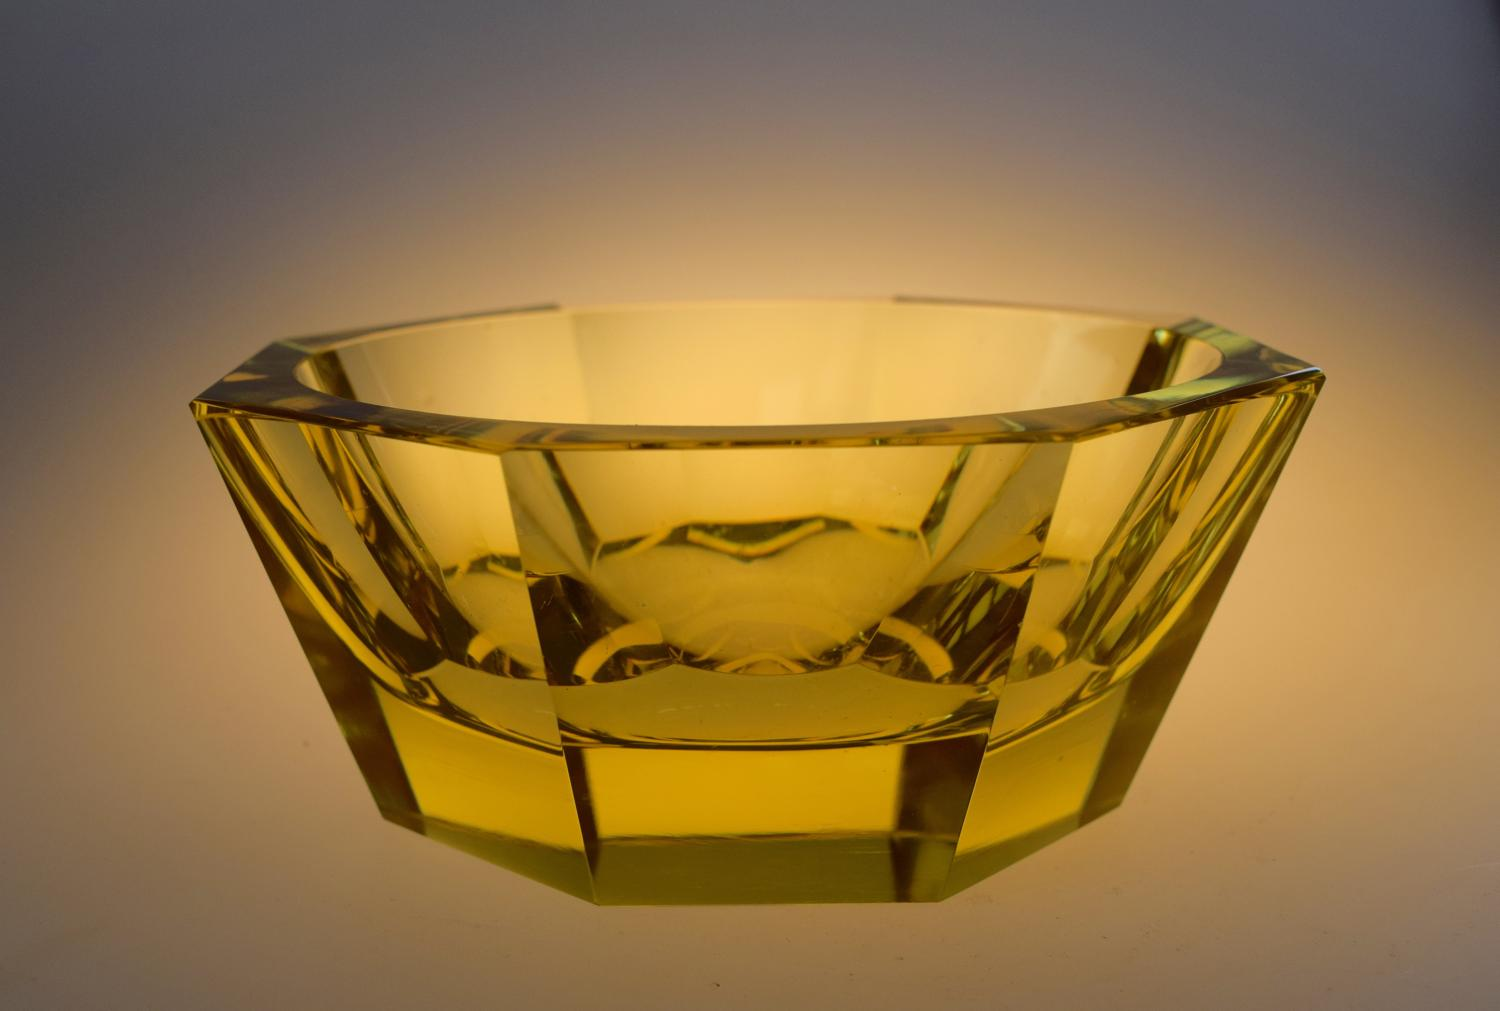 Facetted yellow Daum bowl.